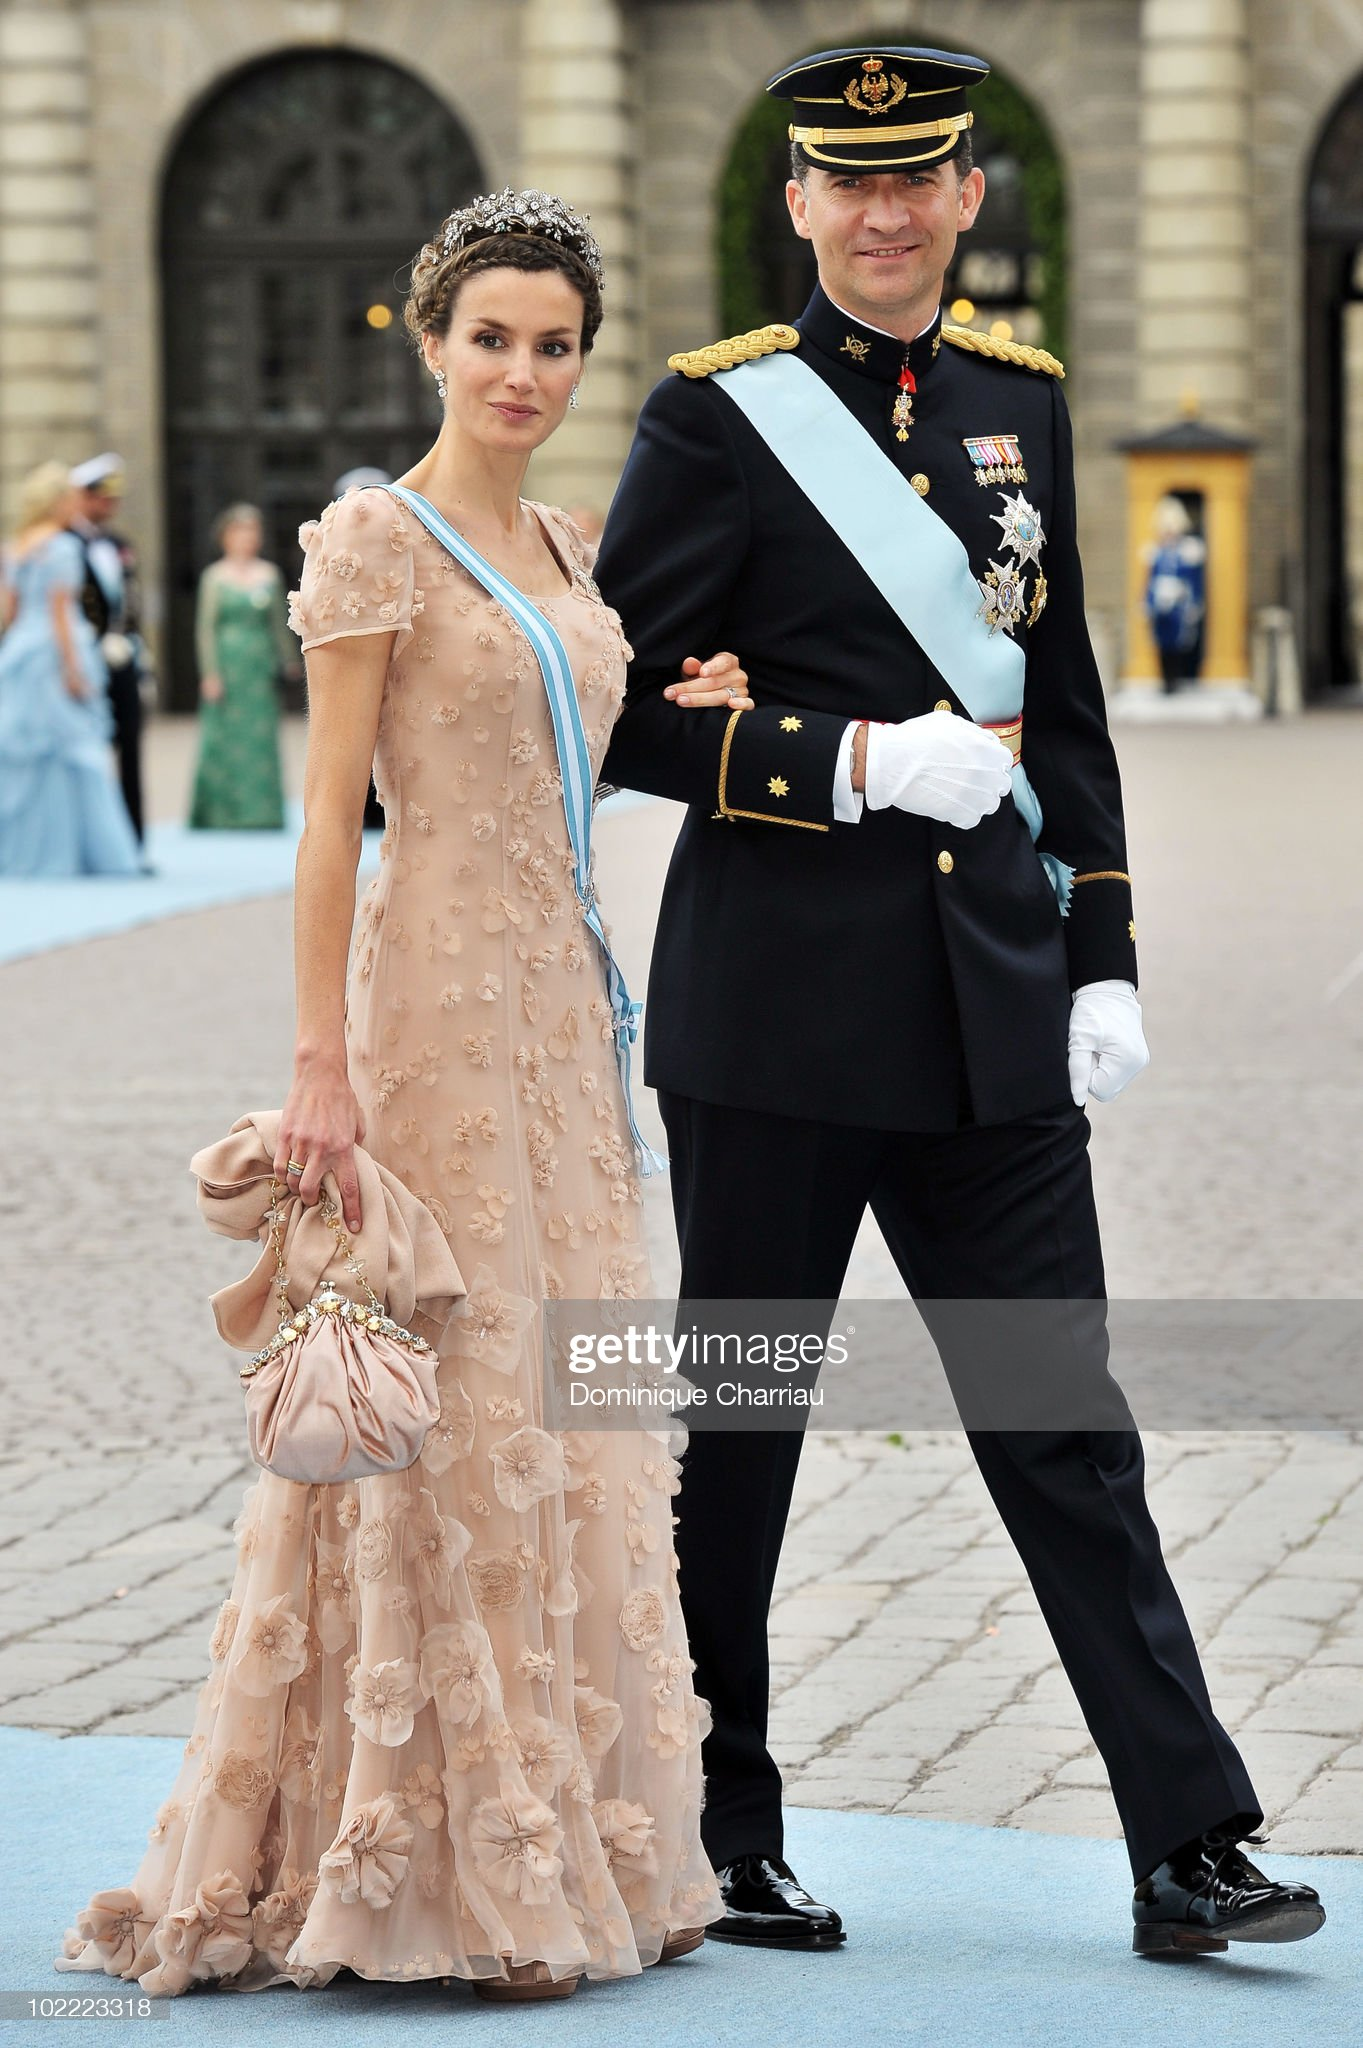 Wedding Of Swedish Crown Princess Victoria & Daniel Westling - Arrivals : News Photo